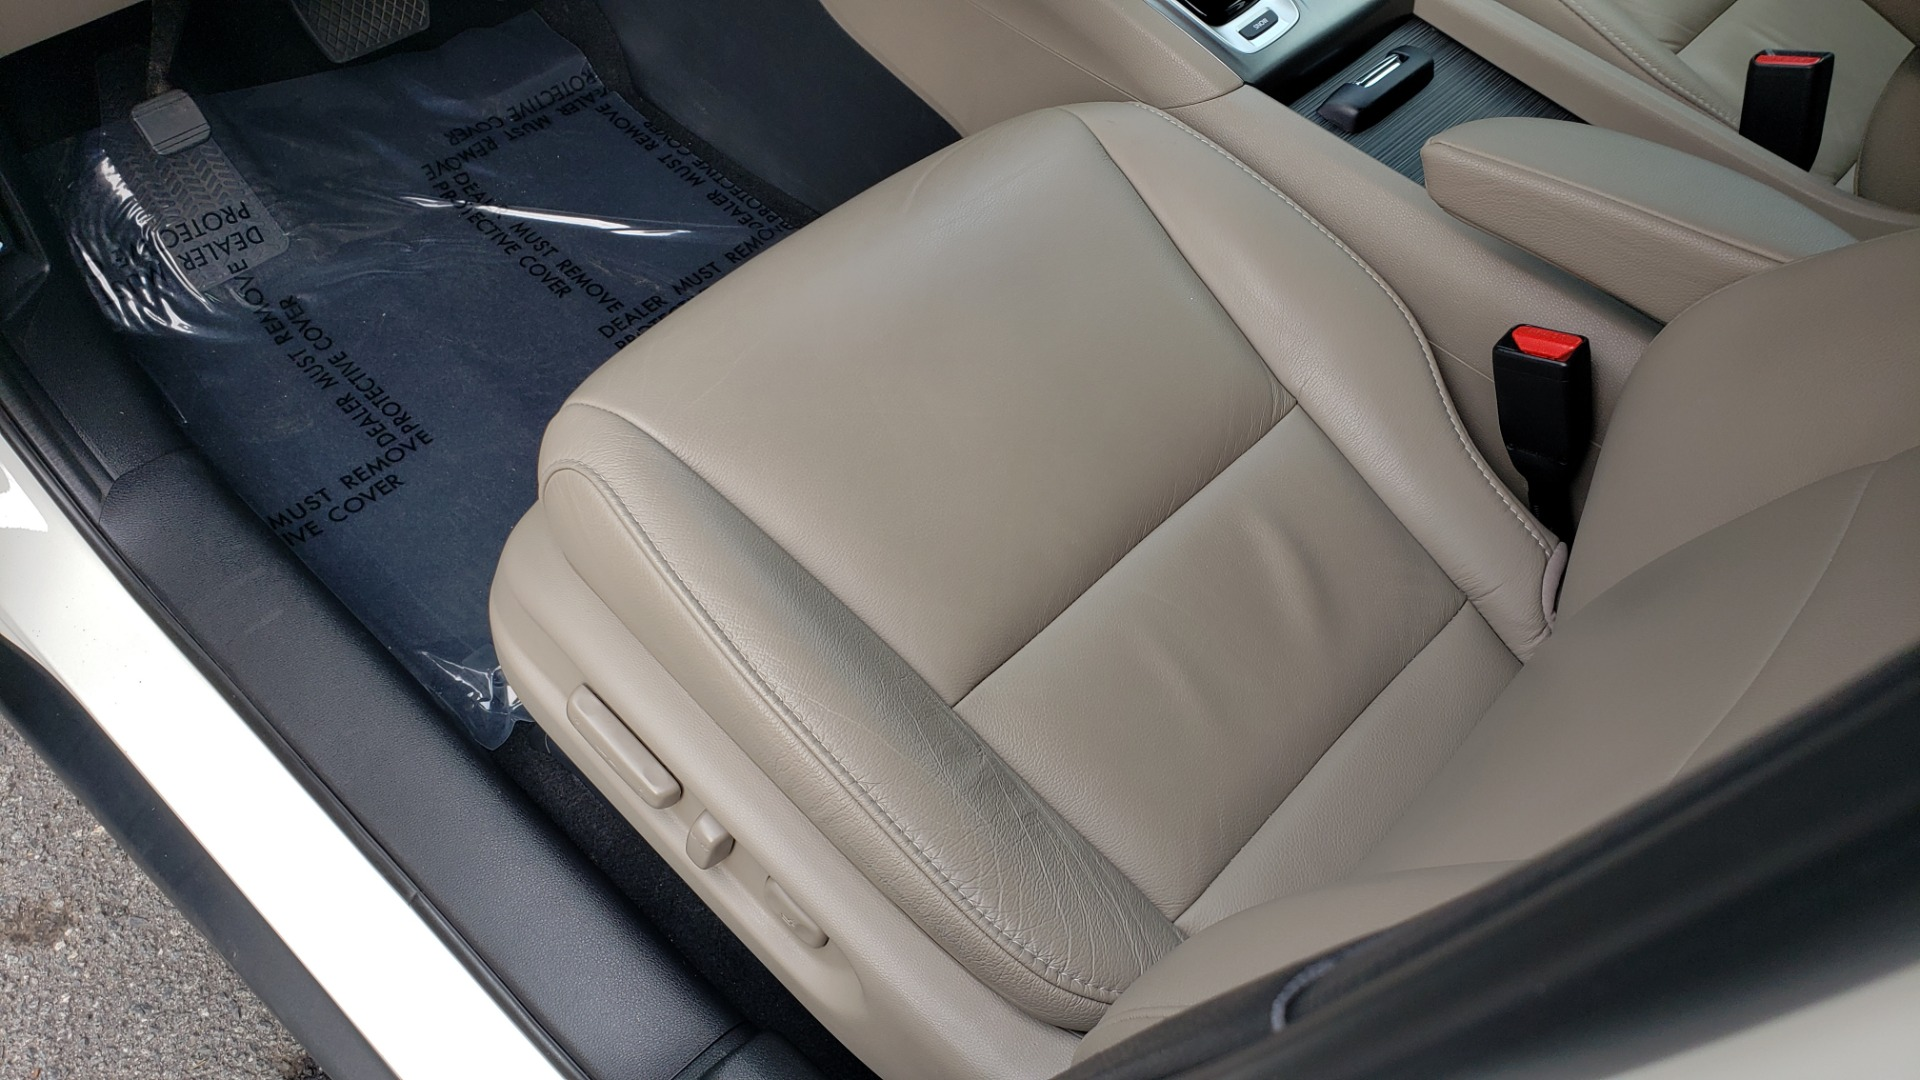 Used 2019 Honda PILOT EX-L / V6 / NAV / SUNROOF / DVD / 3-ROW / REARVIEW for sale Sold at Formula Imports in Charlotte NC 28227 36